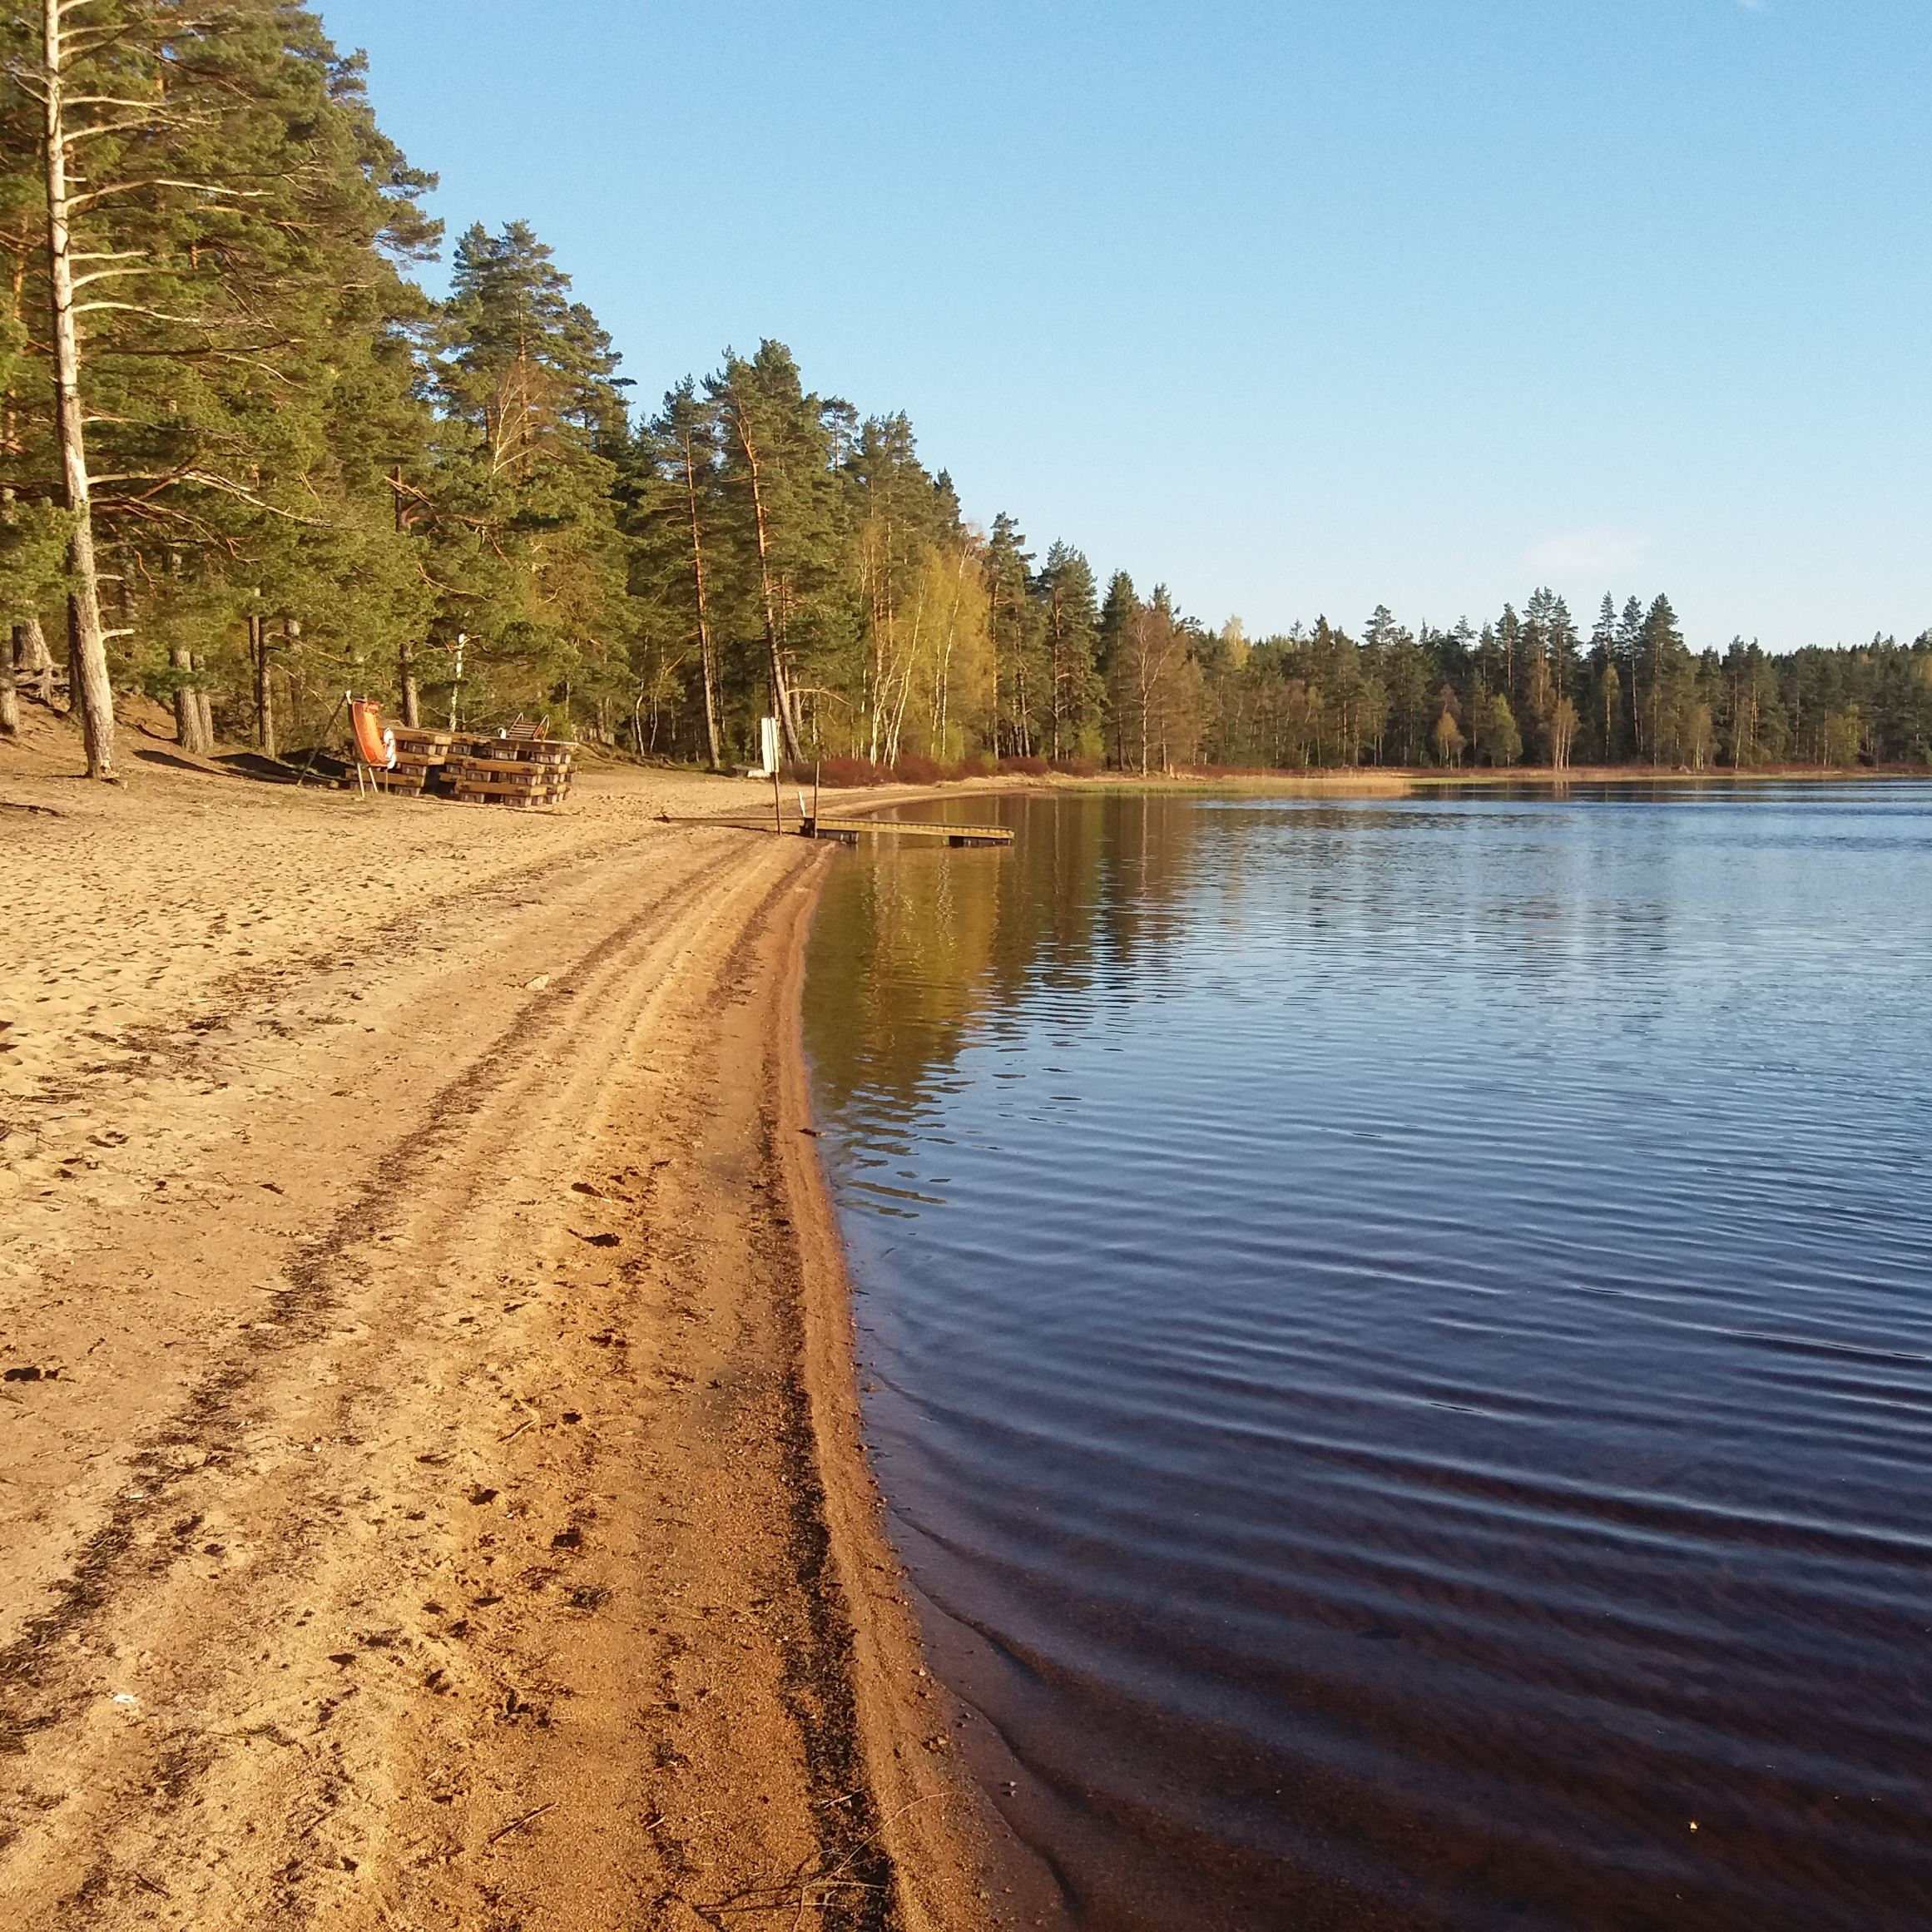 Vesljungasjön, bad